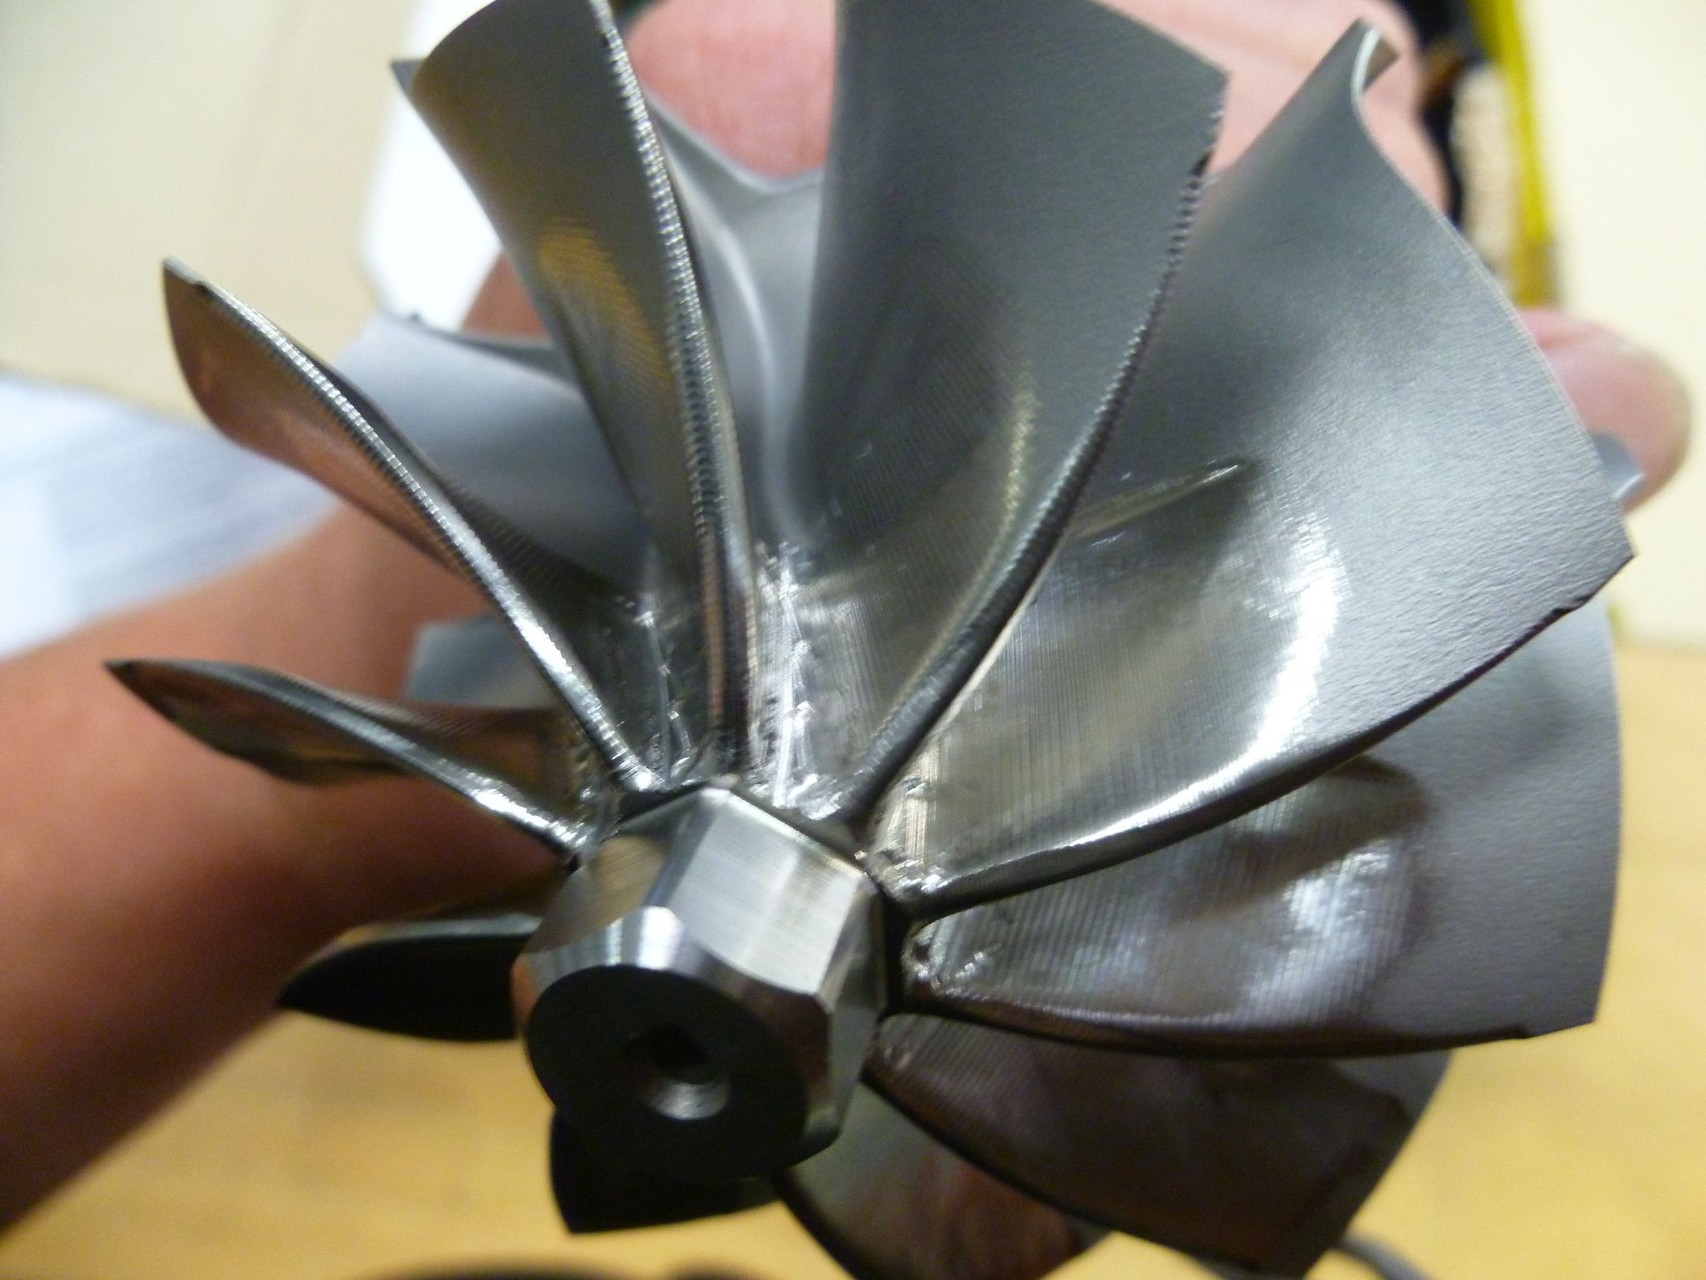 Inconel Turbine Impeller Re-Machining-Reverse Engineering, CAD Generation and 5 Axis Machining